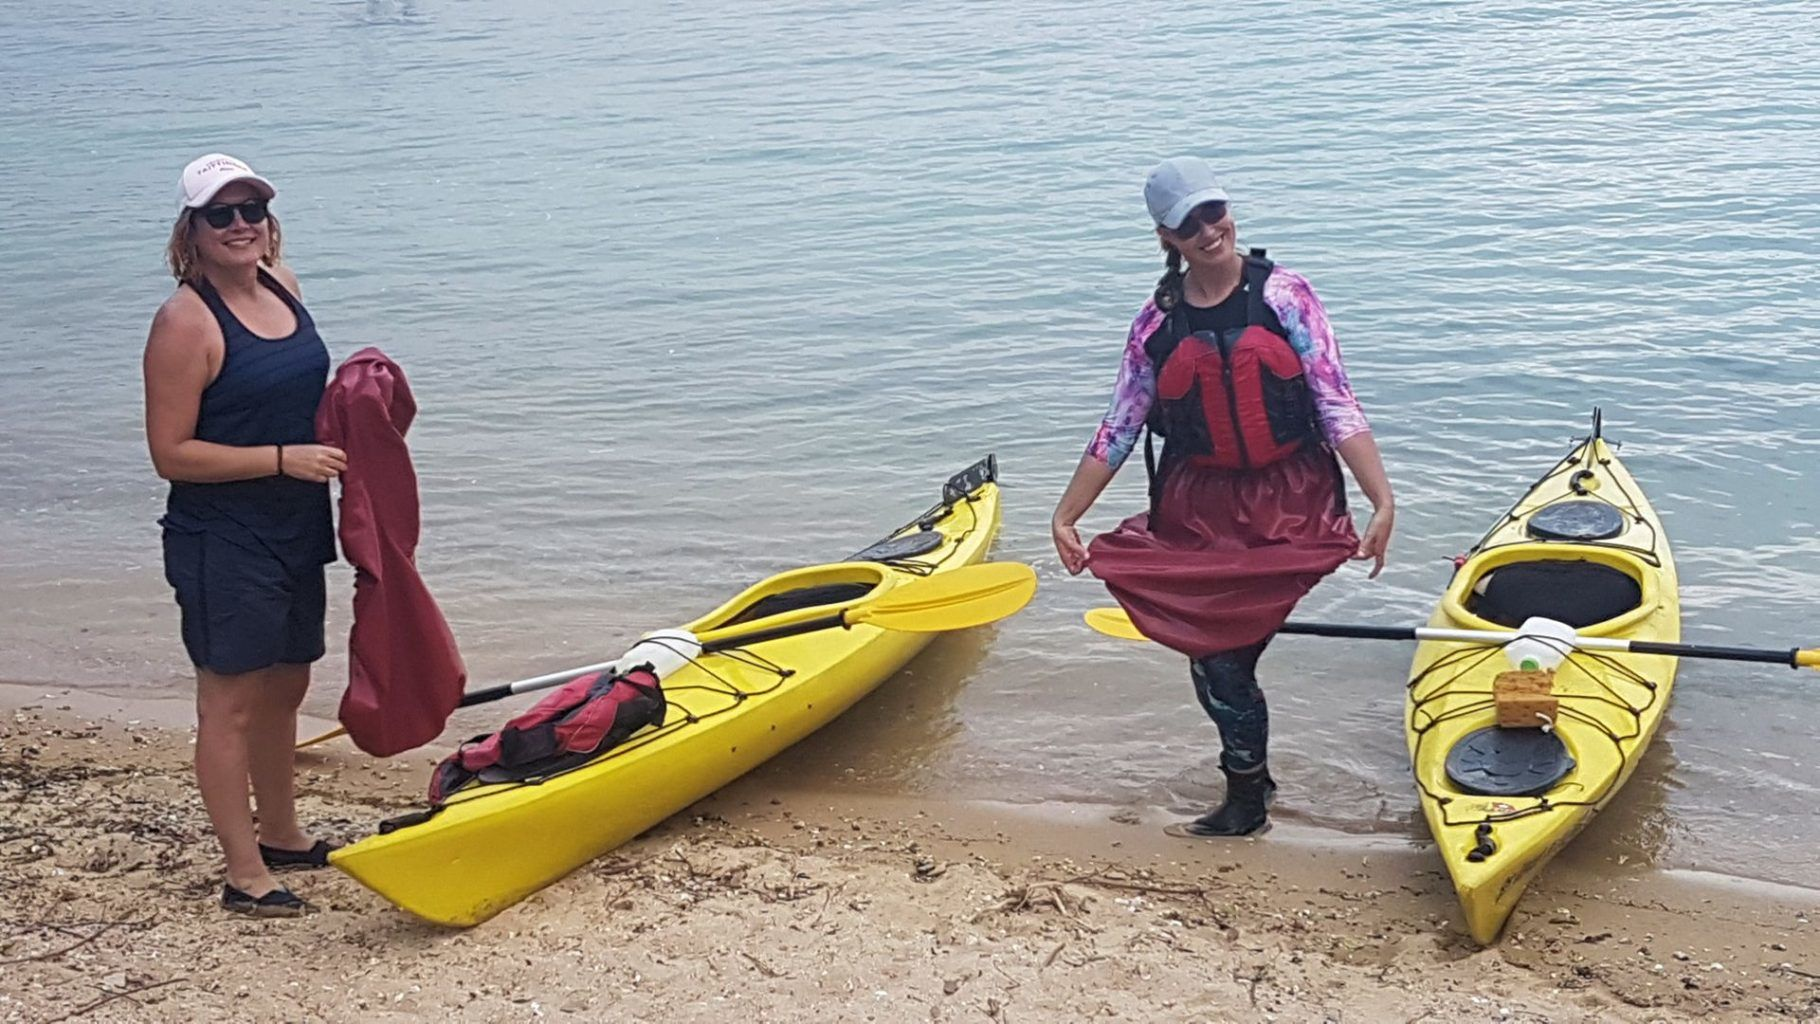 21 Dec 2018 UNESCO Geopark 1 day sea kayak trip Hong Kong